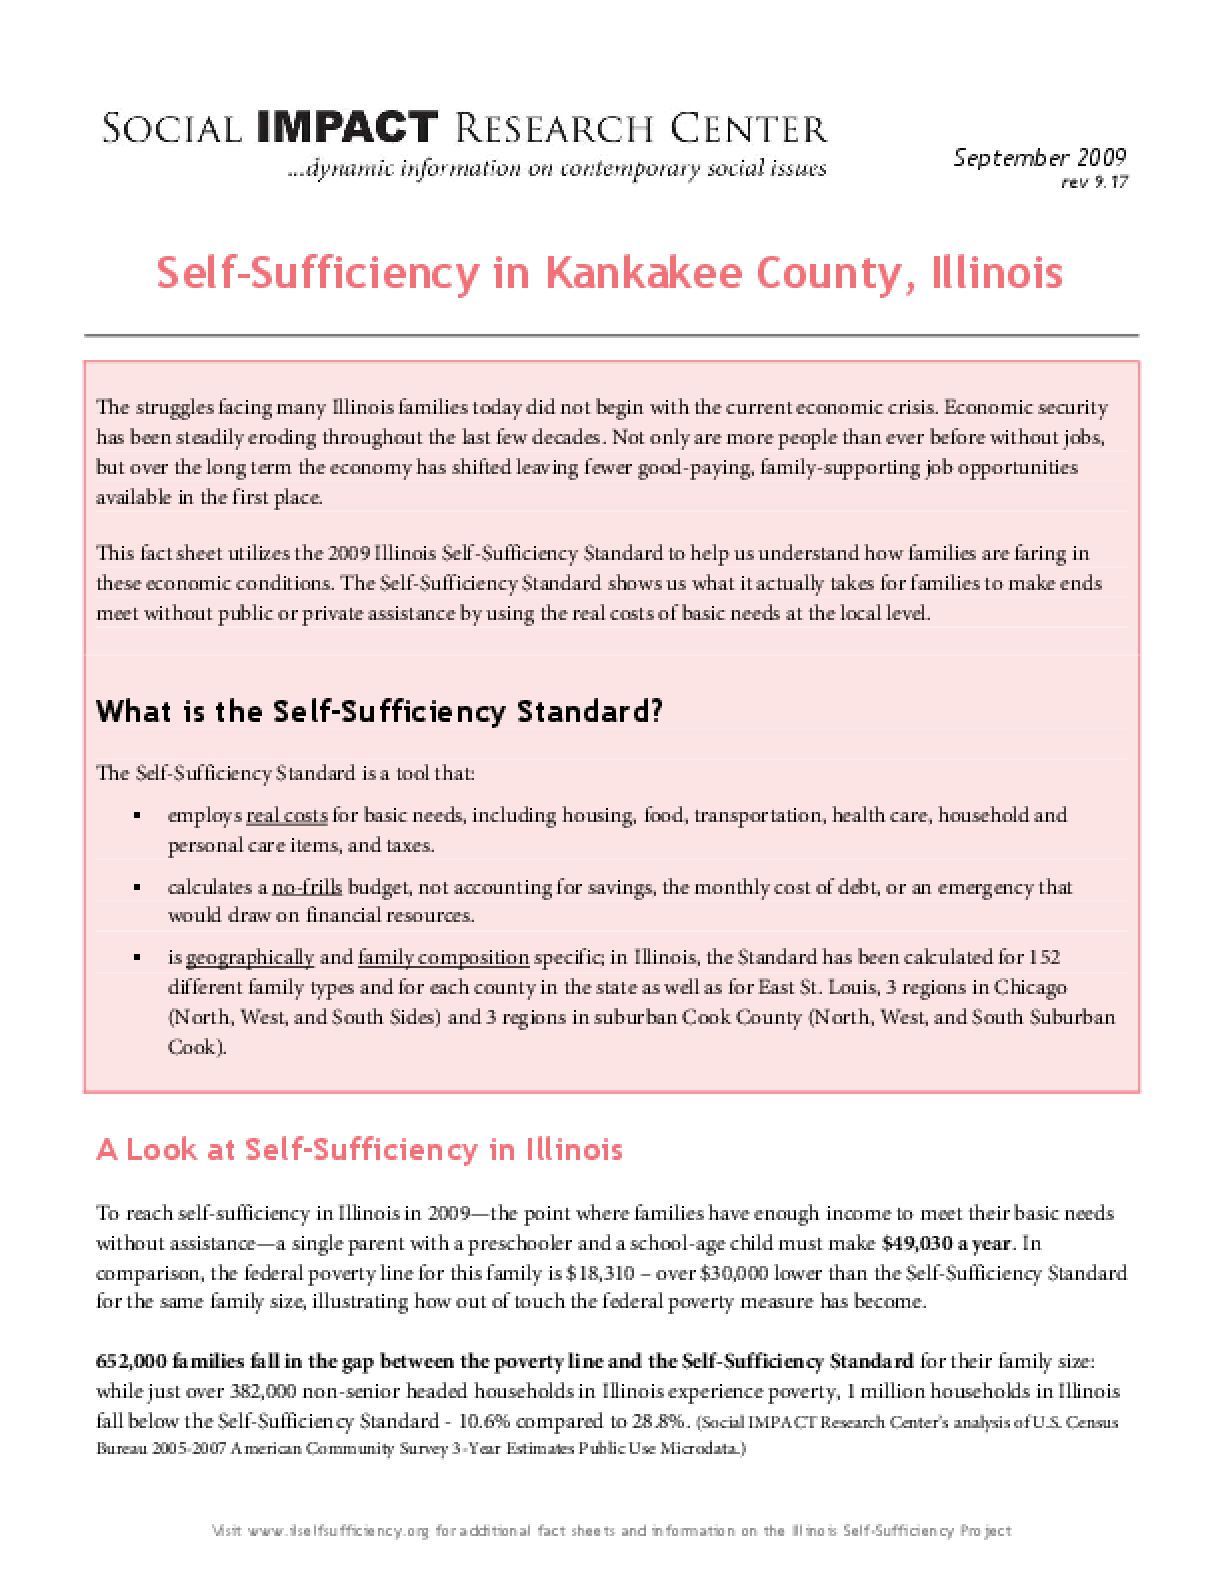 Self-Sufficiency in Kankakee County, Illinois